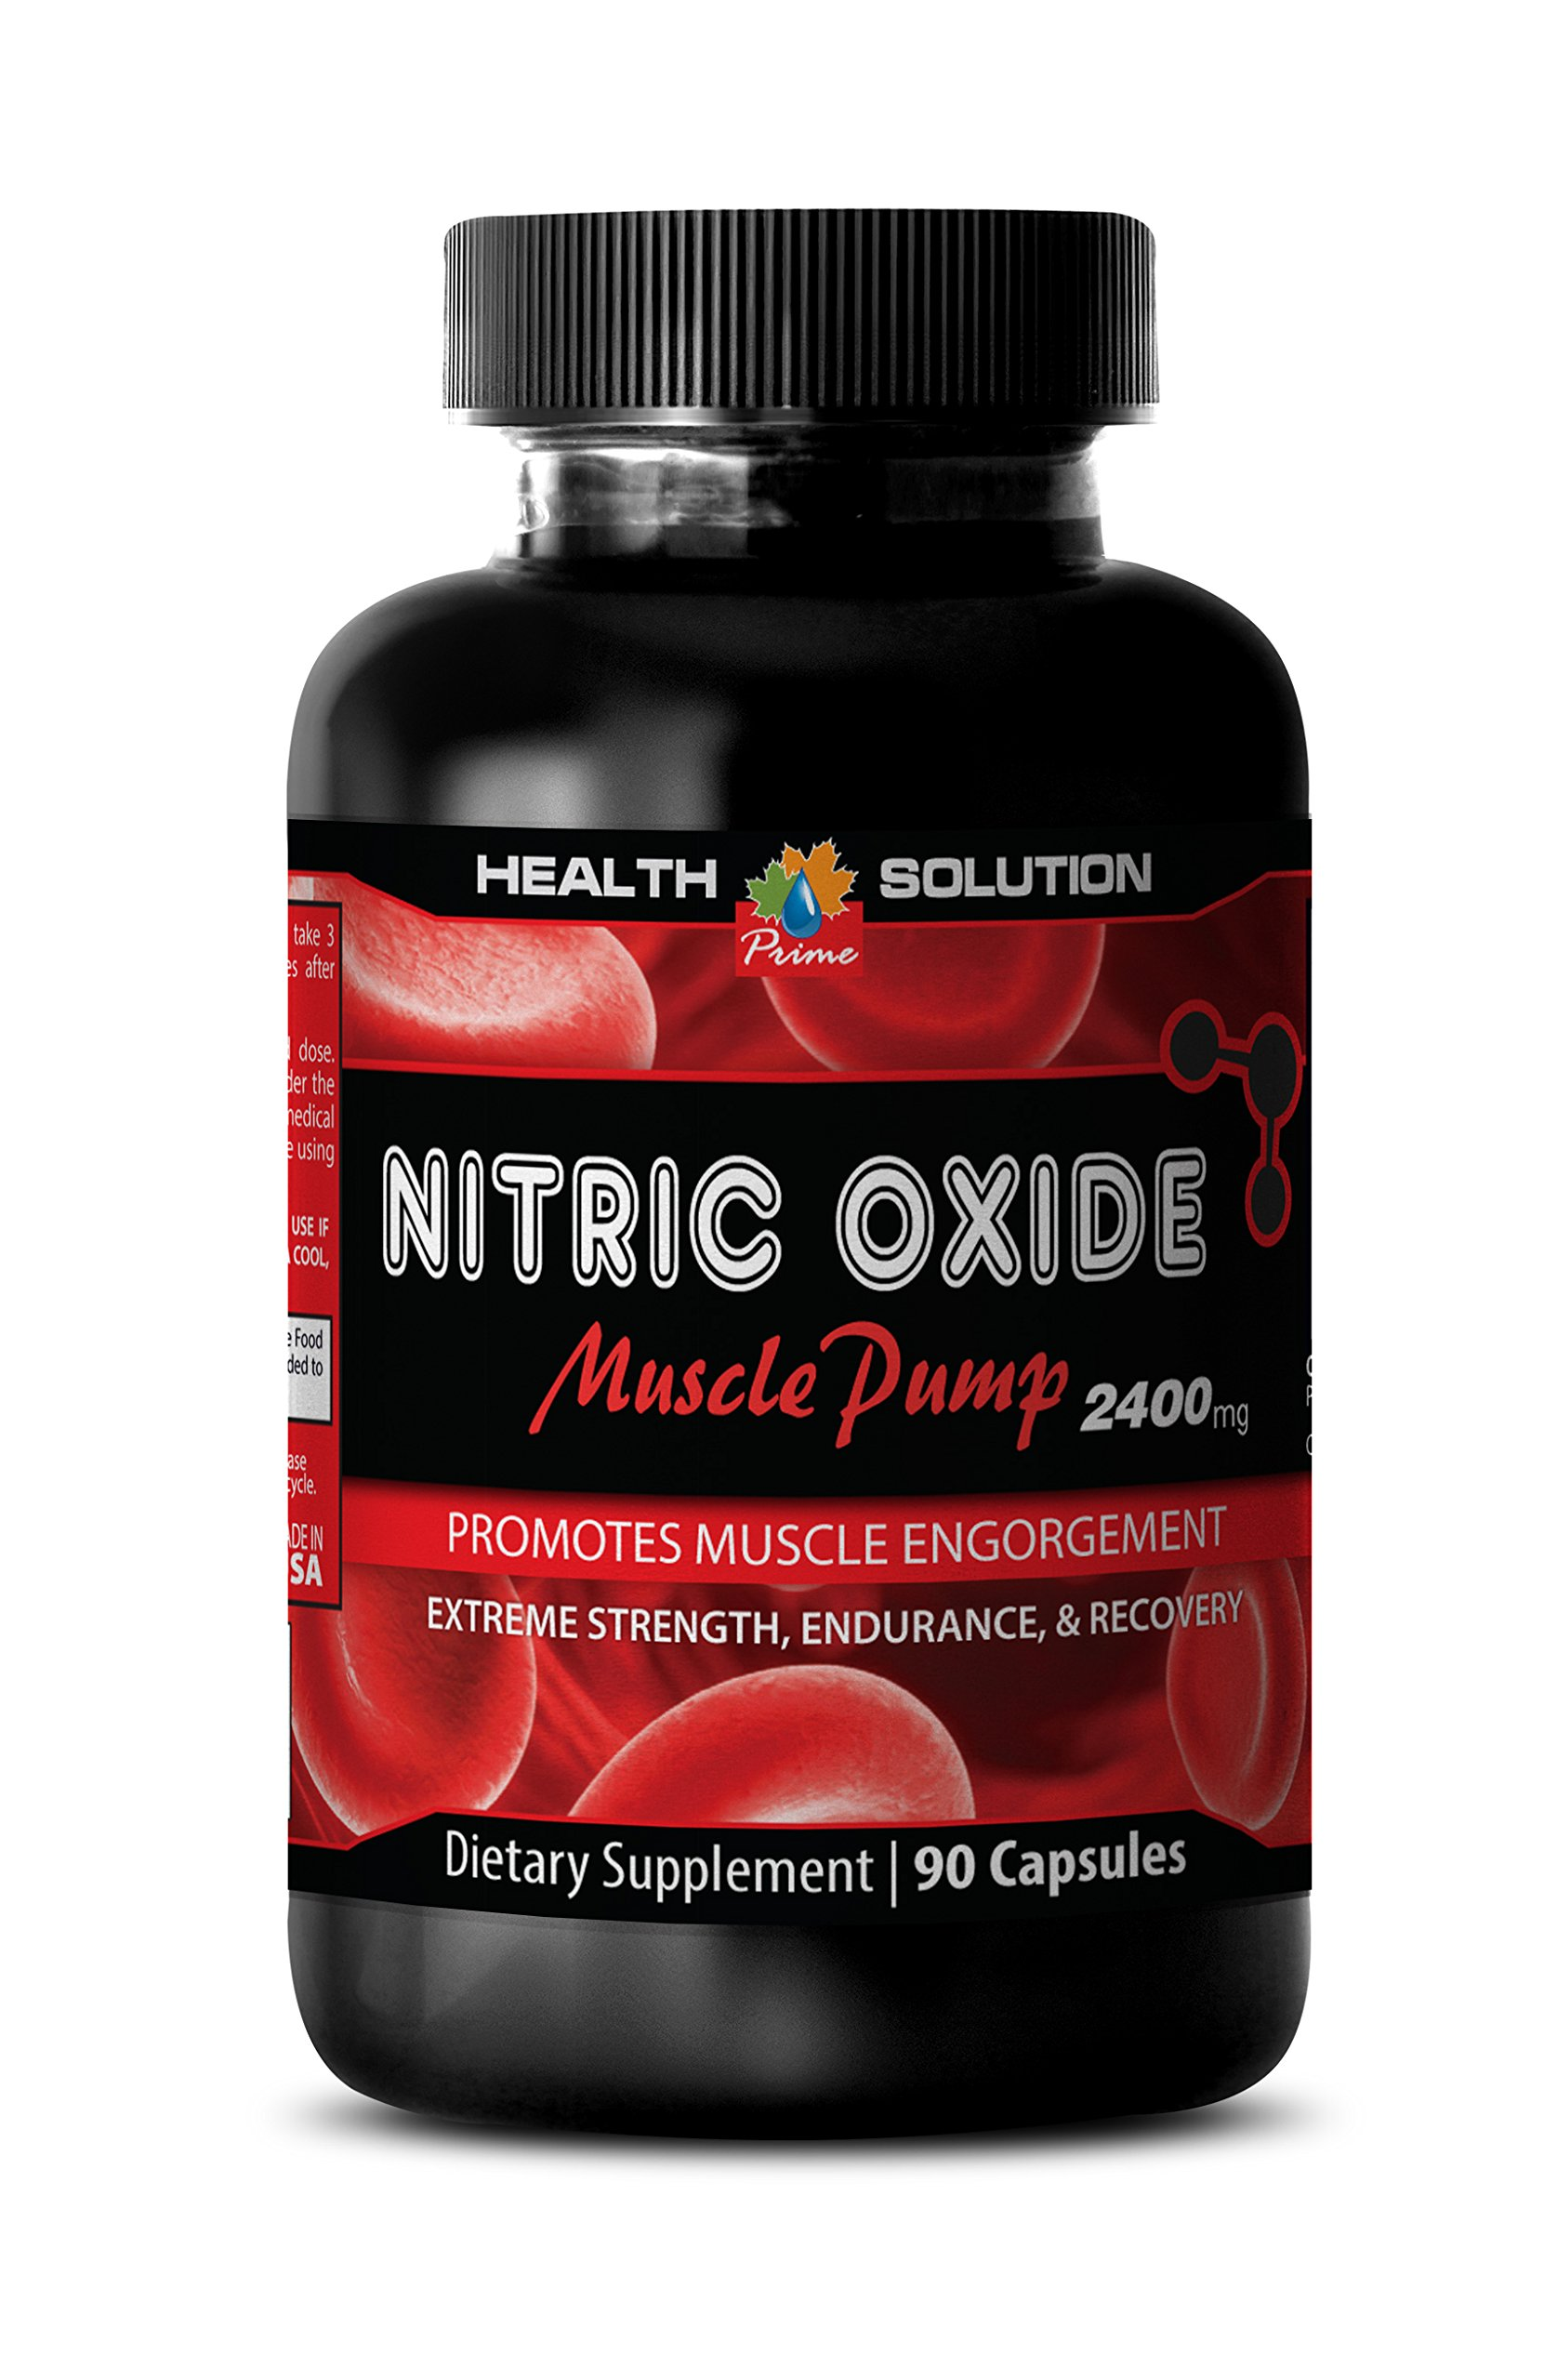 Nitric oxide pills - NITRIC OXIDE MUSCLE PUMP 2400MG - reduce exercise fatigue (1 Bottle) by Health Solution Prime